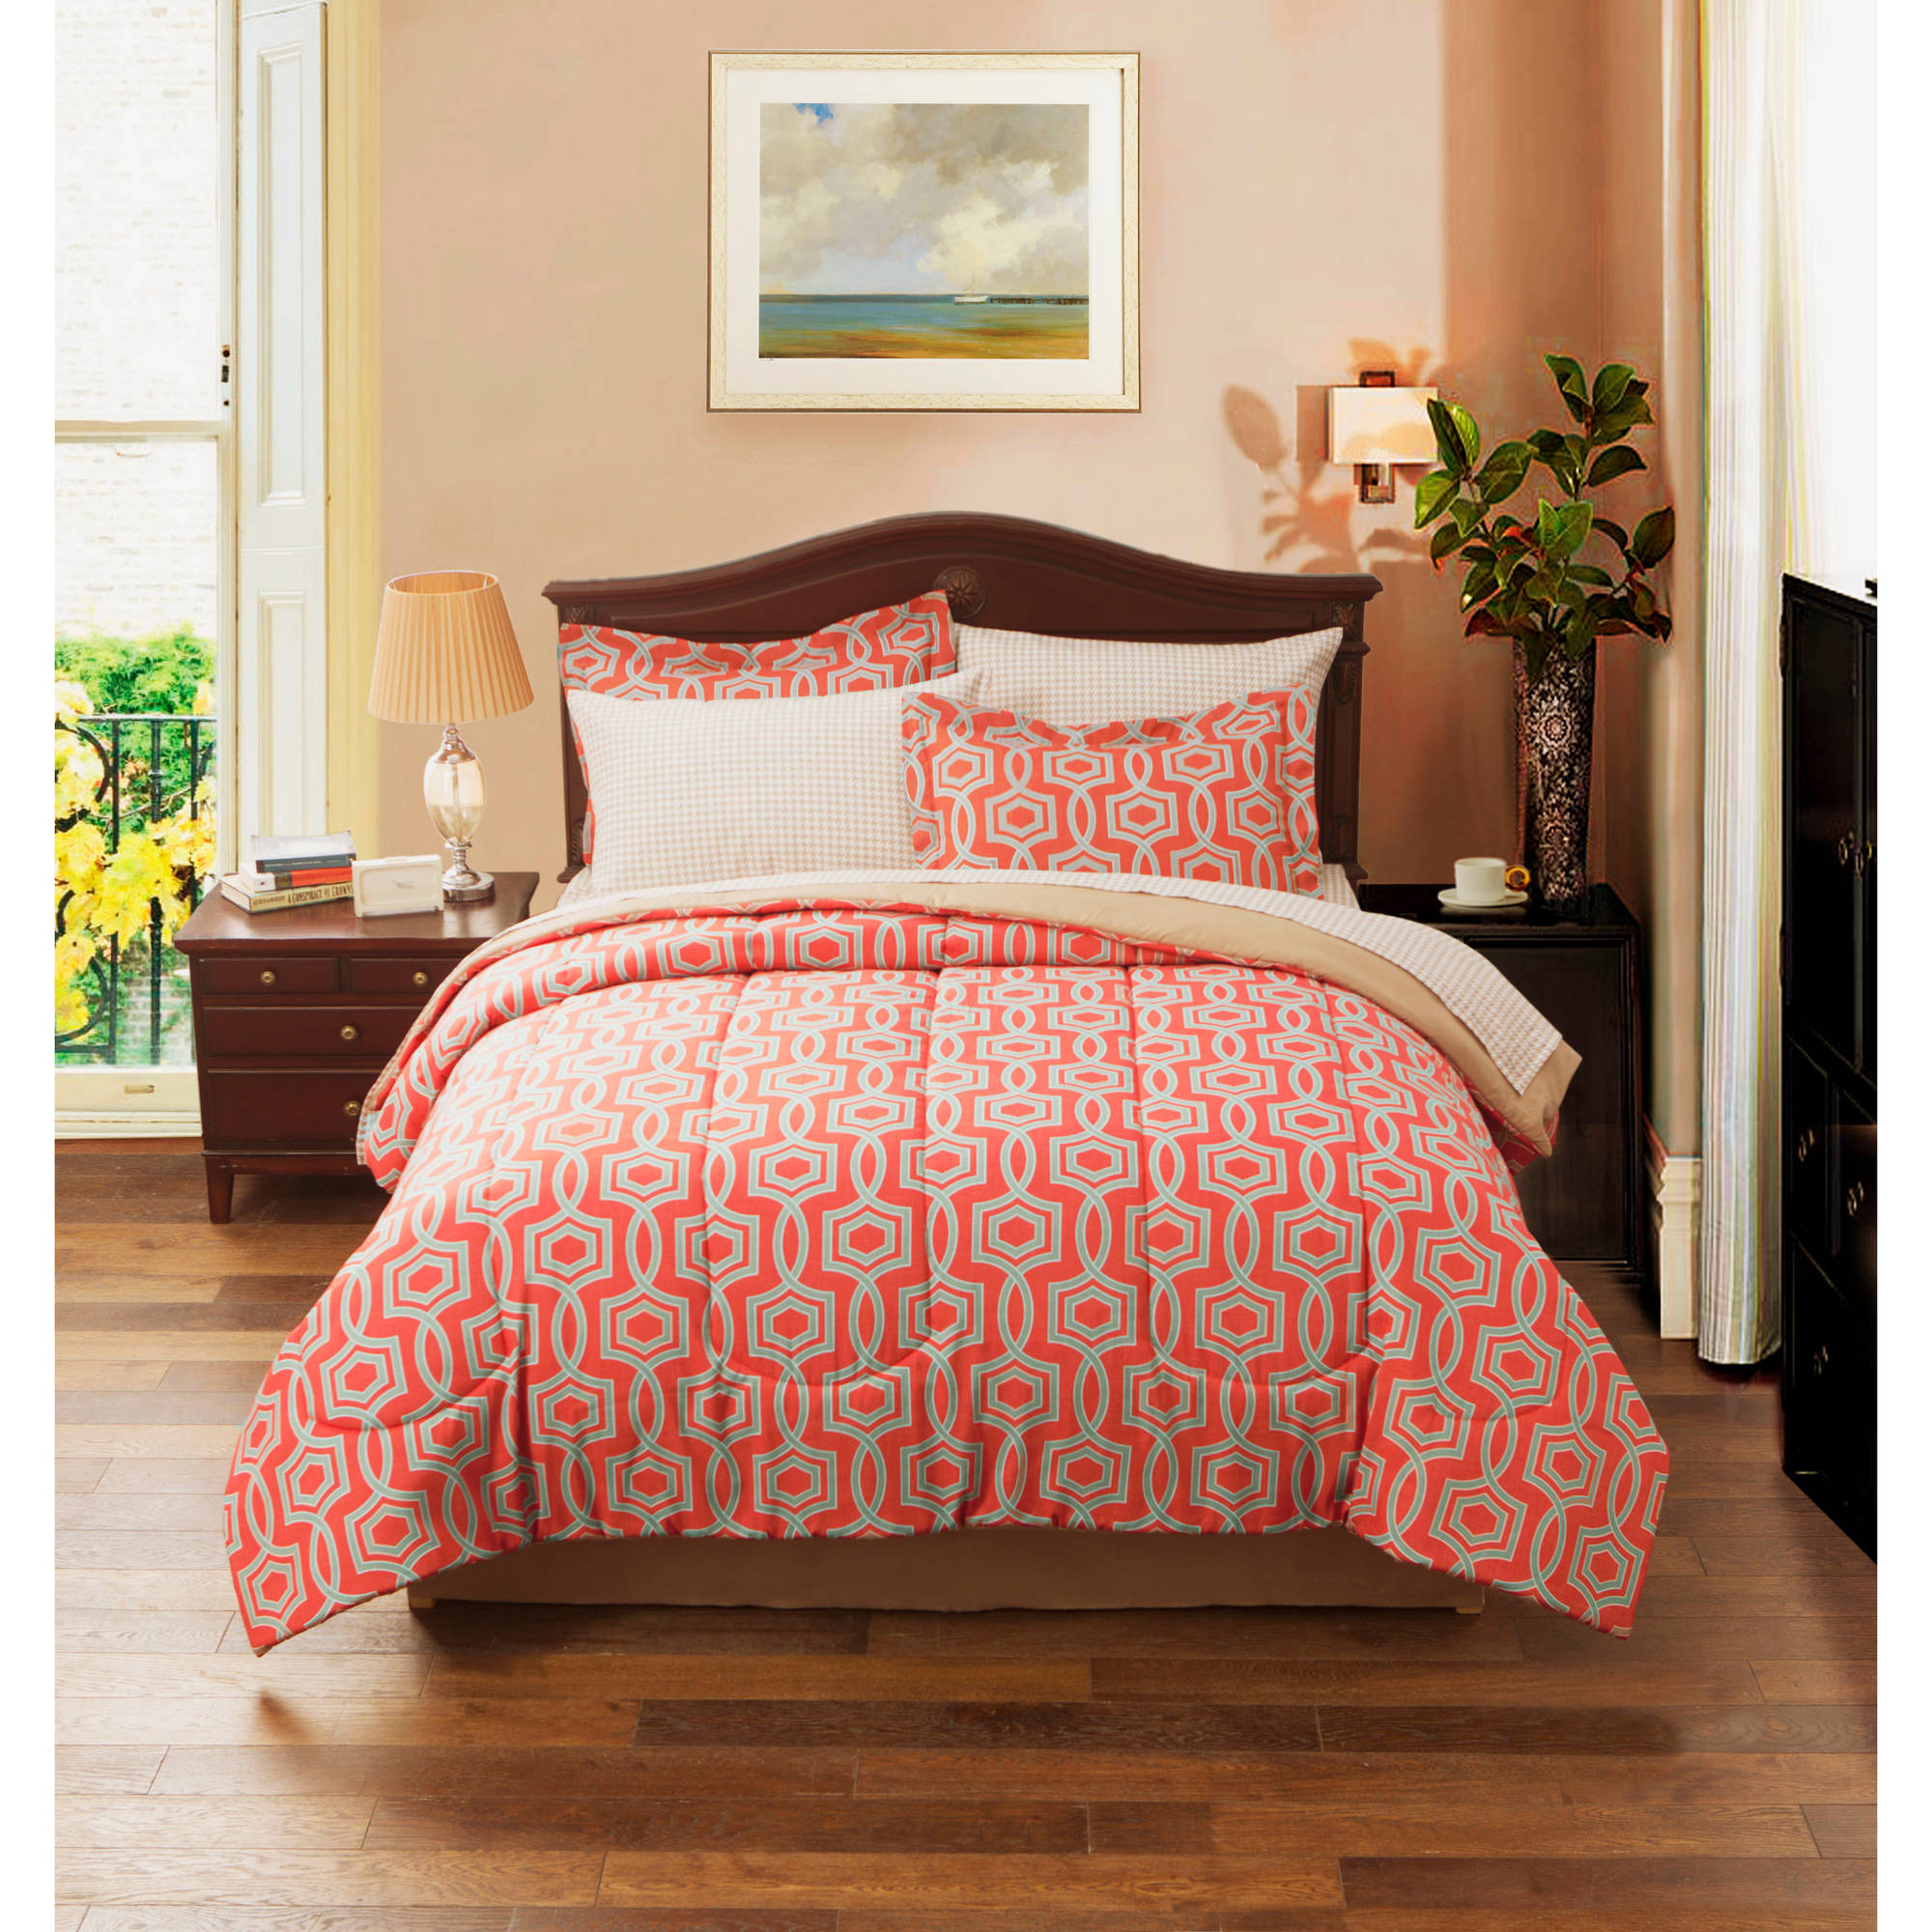 Addison Trellis Reversible Complete Bed in Bag Bedding Set